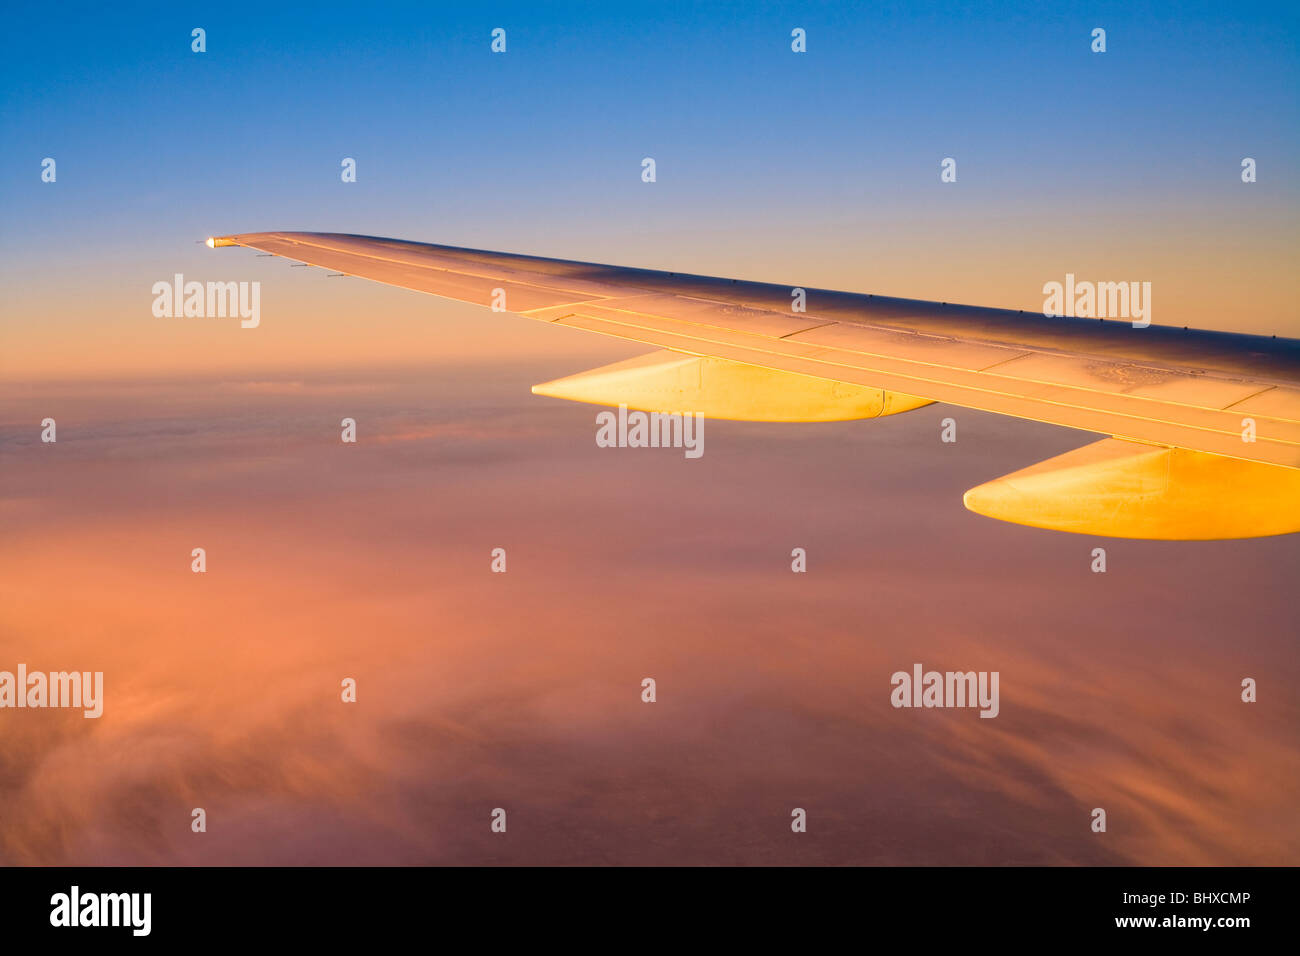 Boeing 747 aircraft wing at sunset Stock Photo